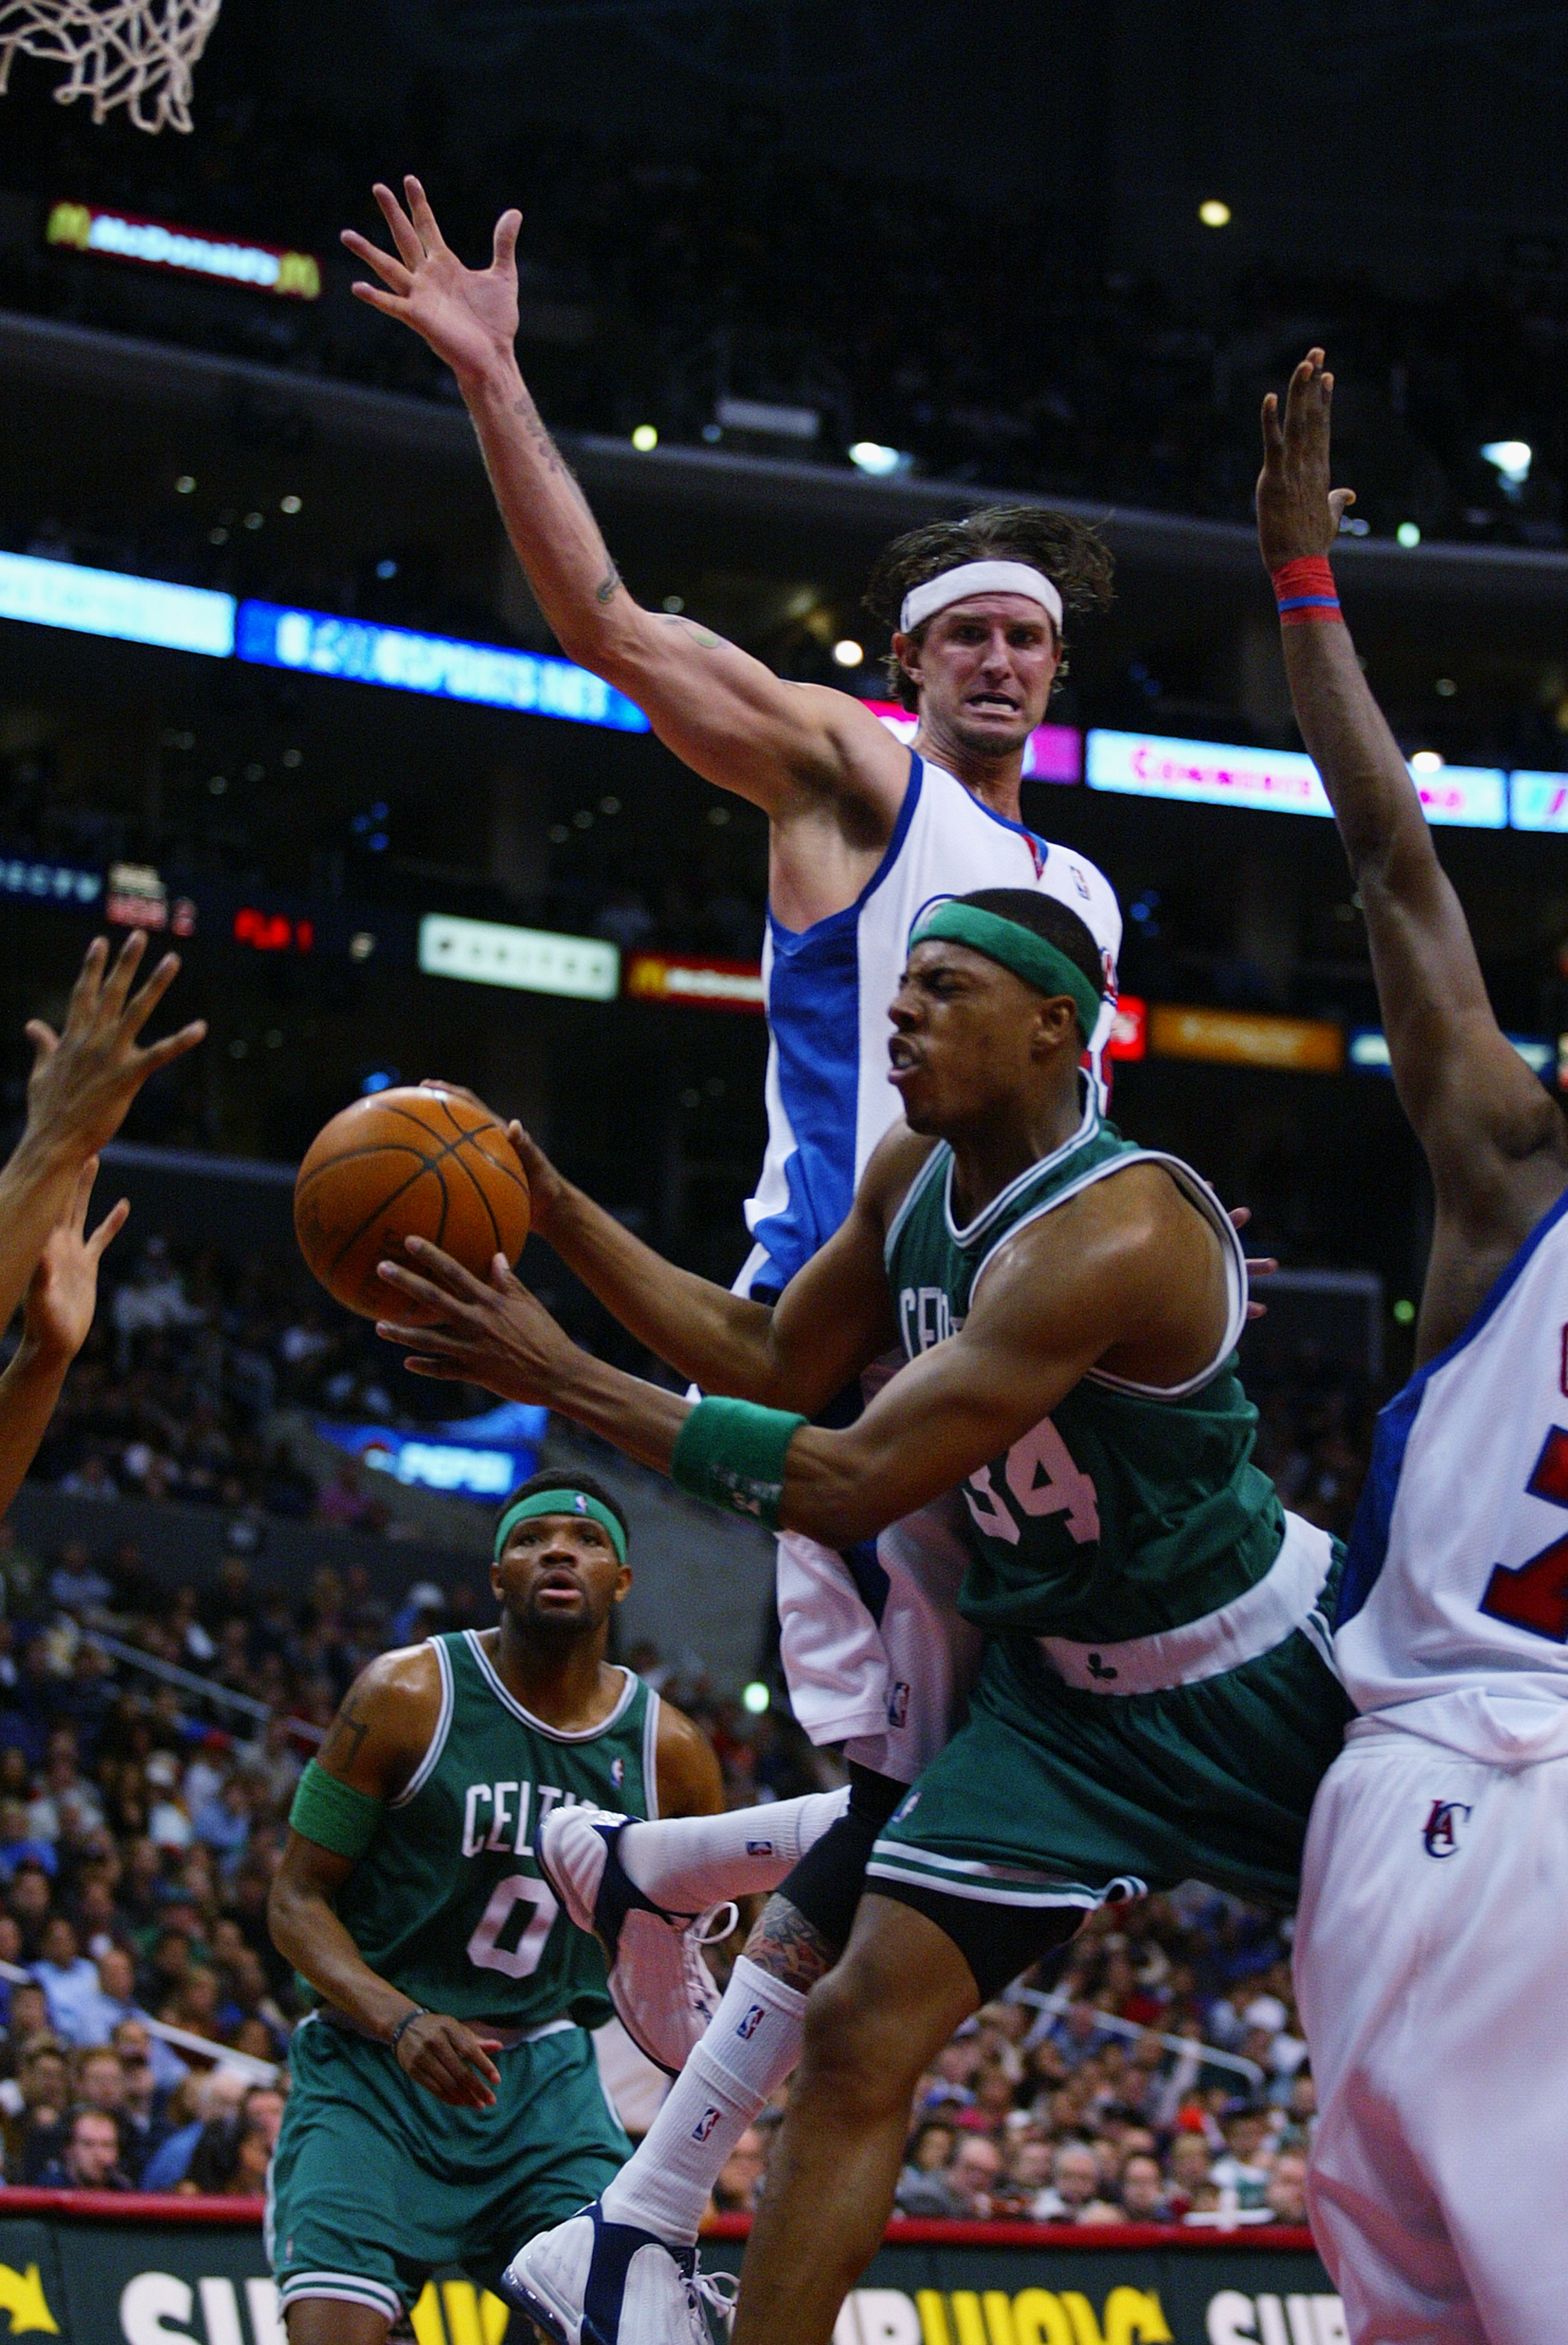 LOS ANGELES - FEBRUARY 15:  Paul Pierce #34 of the Boston Celtics drives to the basket past Cherokee Parks #44 of the Los Angeles Clippers during the NBA game at Staples Center on February 15, 2003 in Los Angeles, California.  The Celtics won 92-84.  NOTE